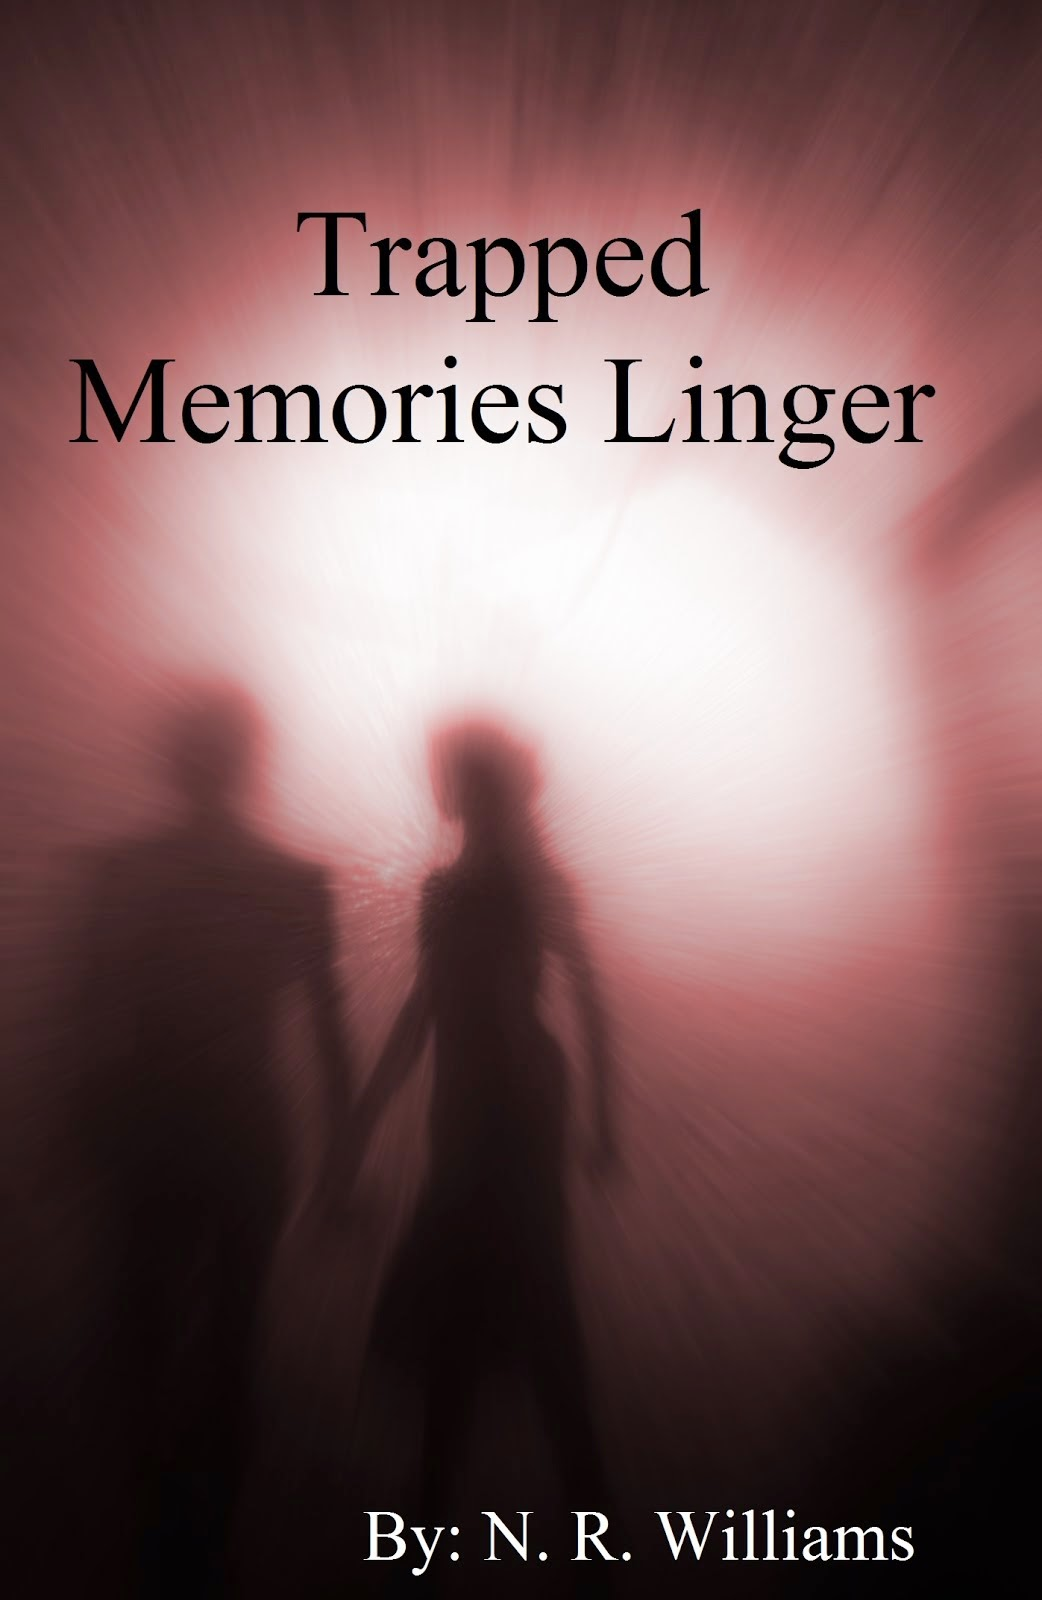 Trapped Memories Linger